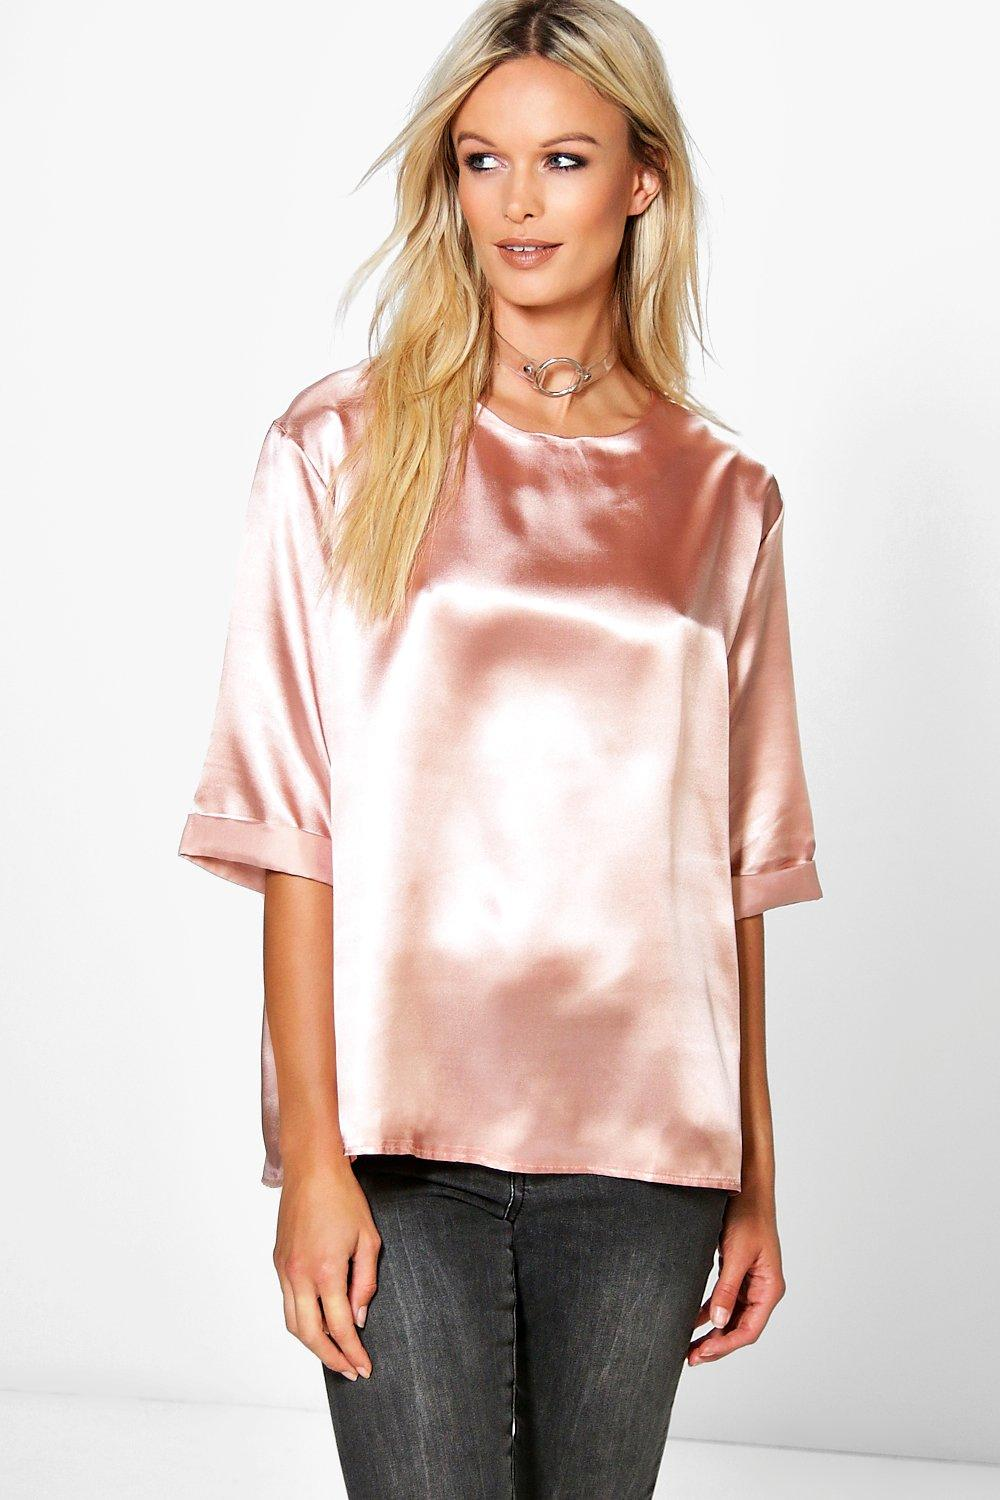 Poppy Boutique Oversized Side Spilt Satin T-Shirt